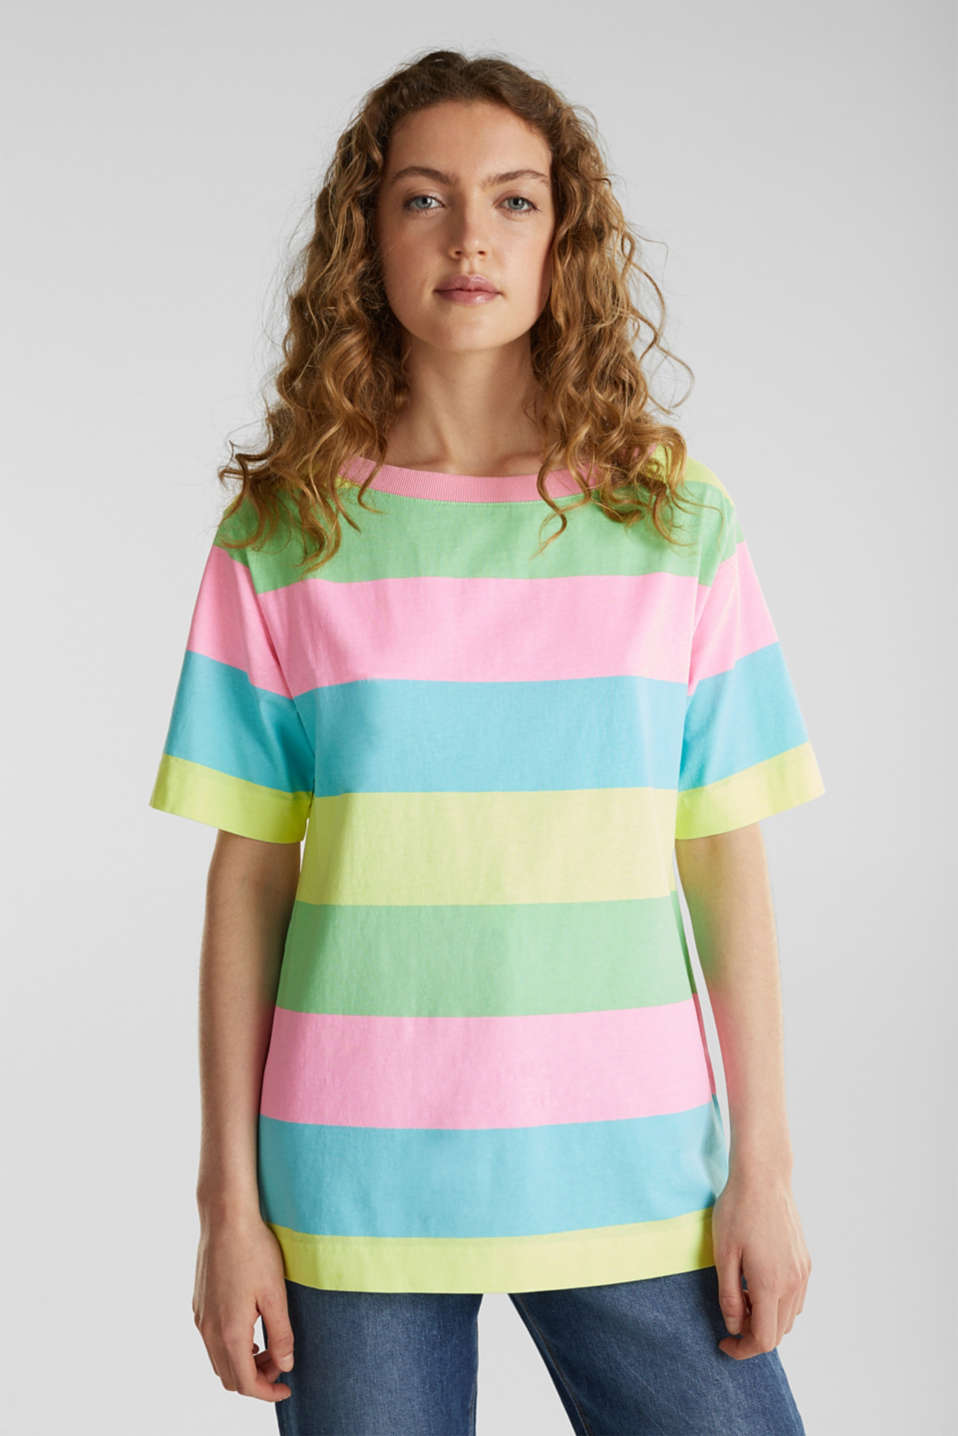 T-shirt with block stripes, 100% cotton, LIME YELLOW, detail image number 4